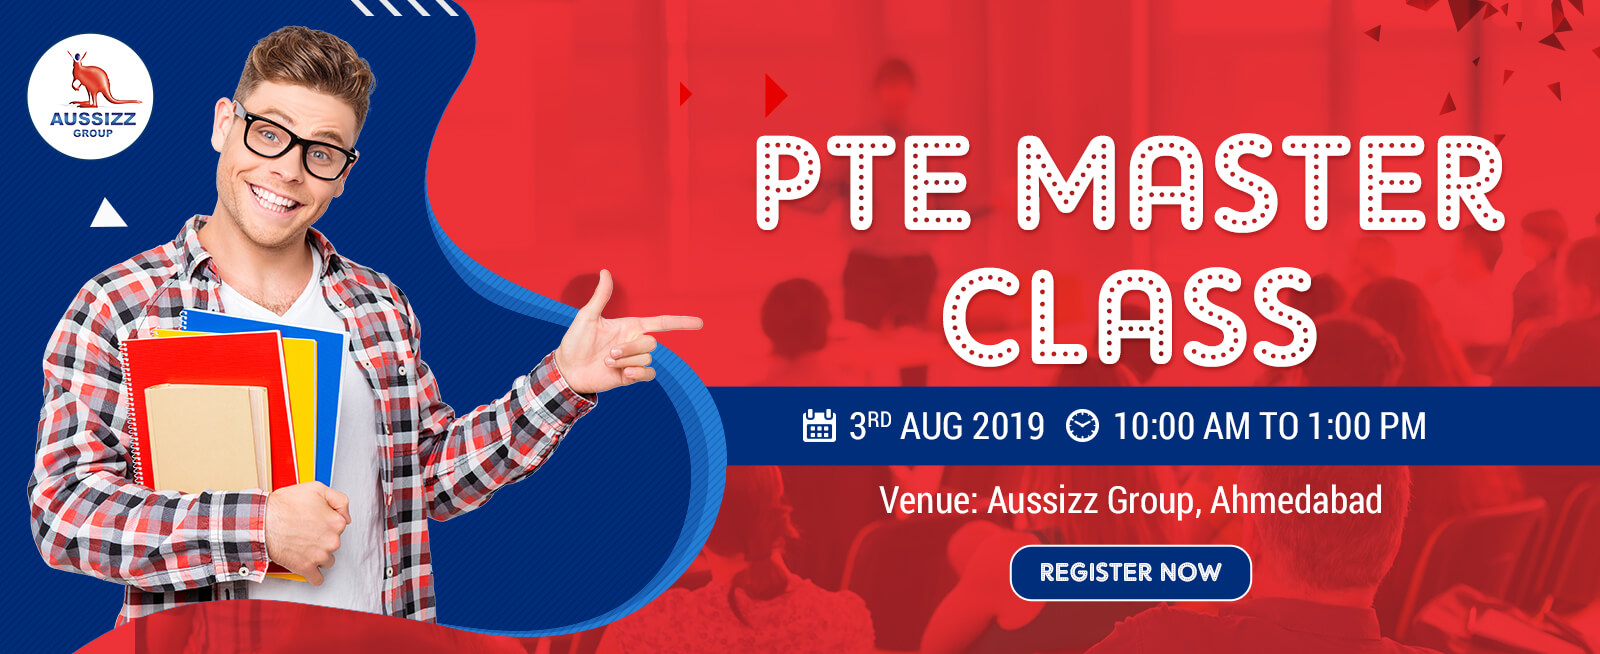 Crack the PTE exam with One Day Master Class at Aussizz Group Ahmedabad